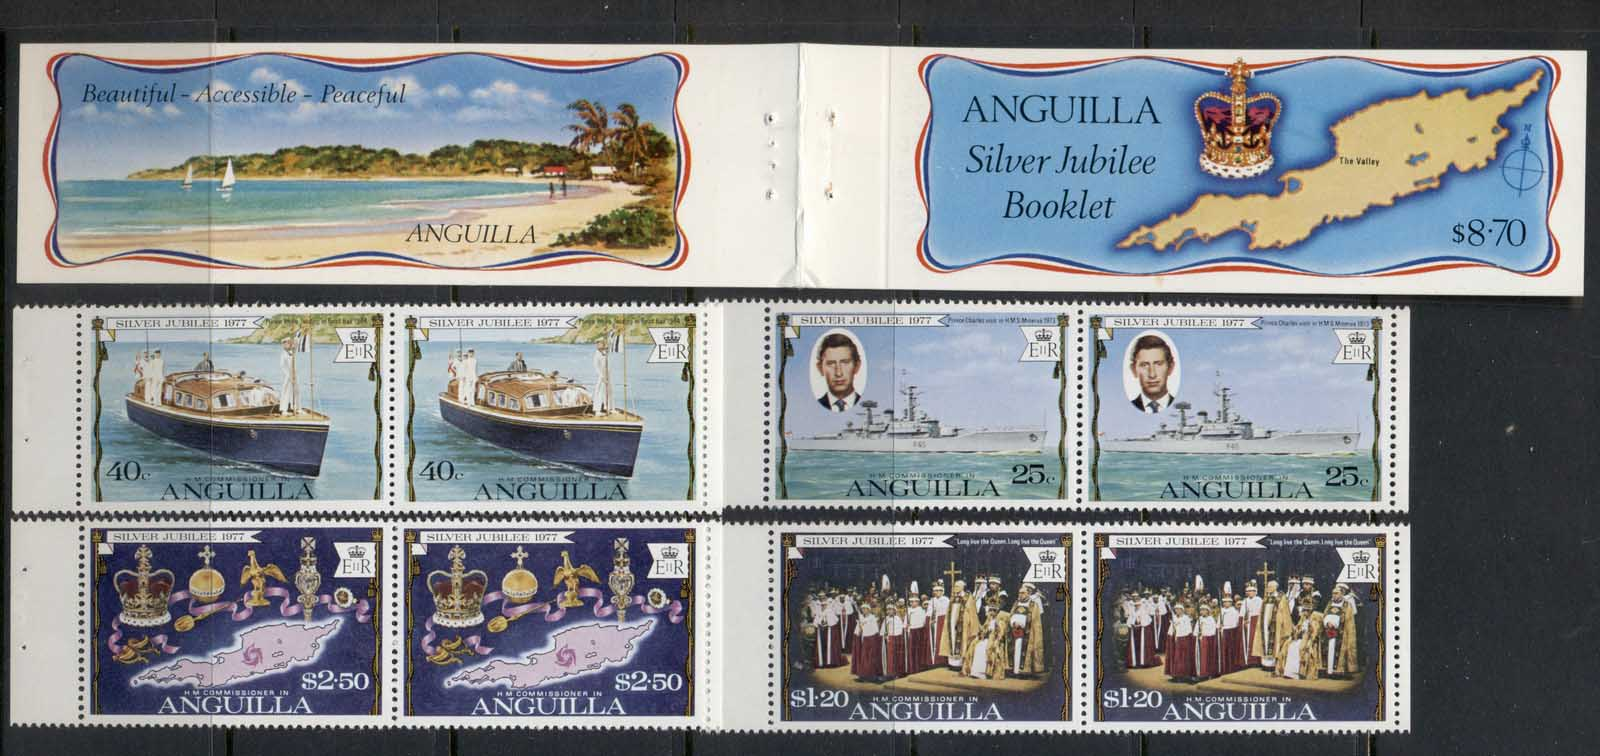 Anguilla 1977 QEII Silver Jubilee exploded booklet MUH